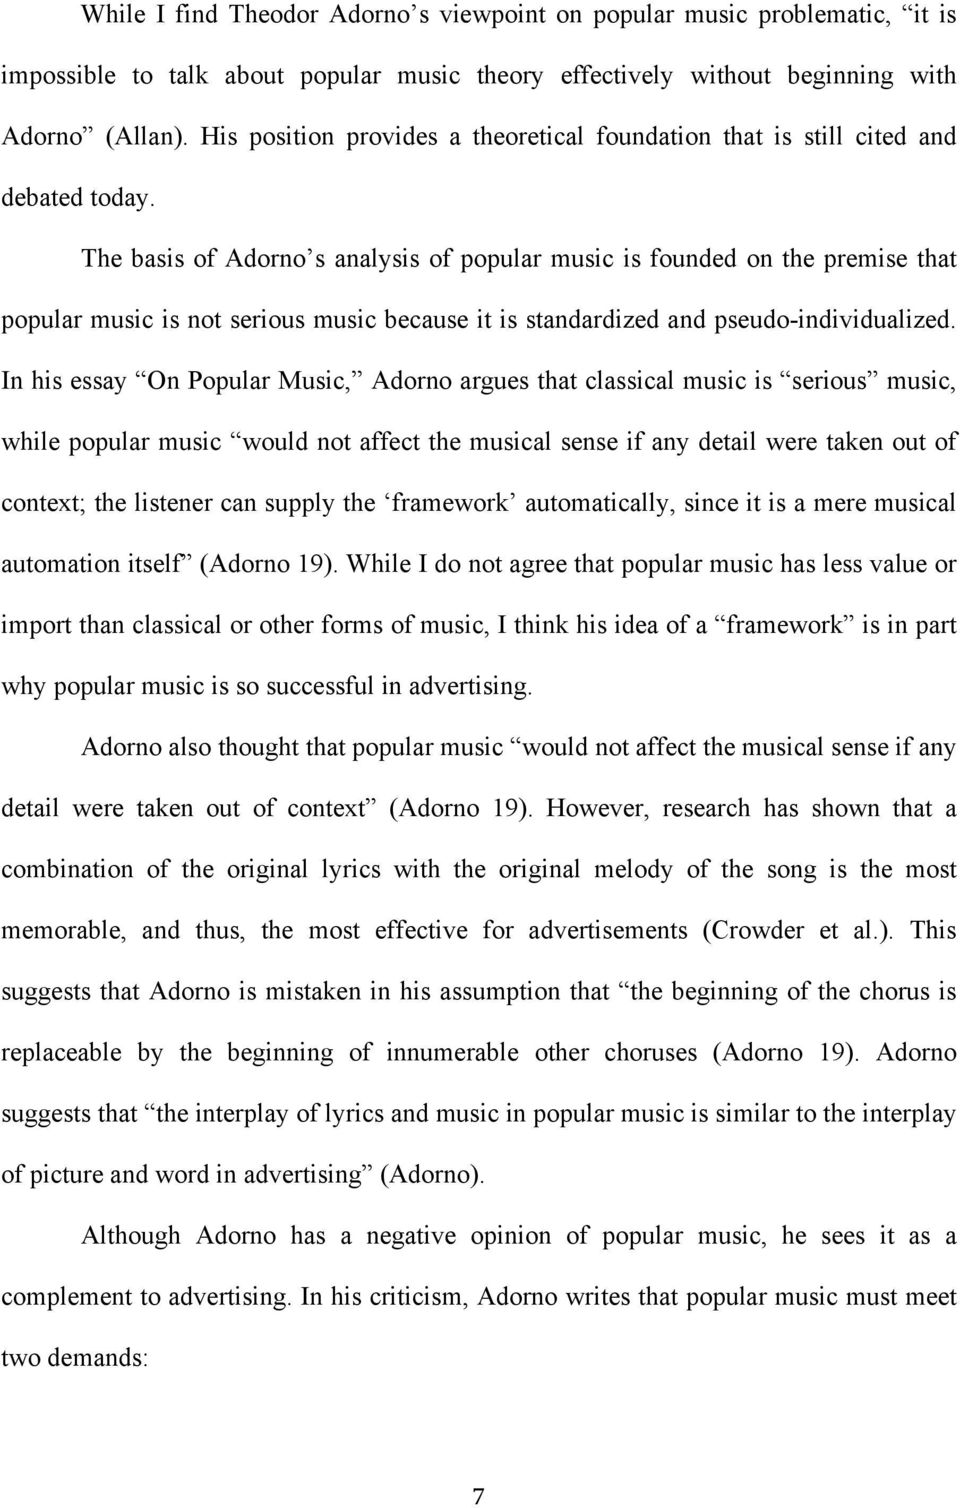 The basis of Adorno s analysis of popular music is founded on the premise that popular music is not serious music because it is standardized and pseudo-individualized.